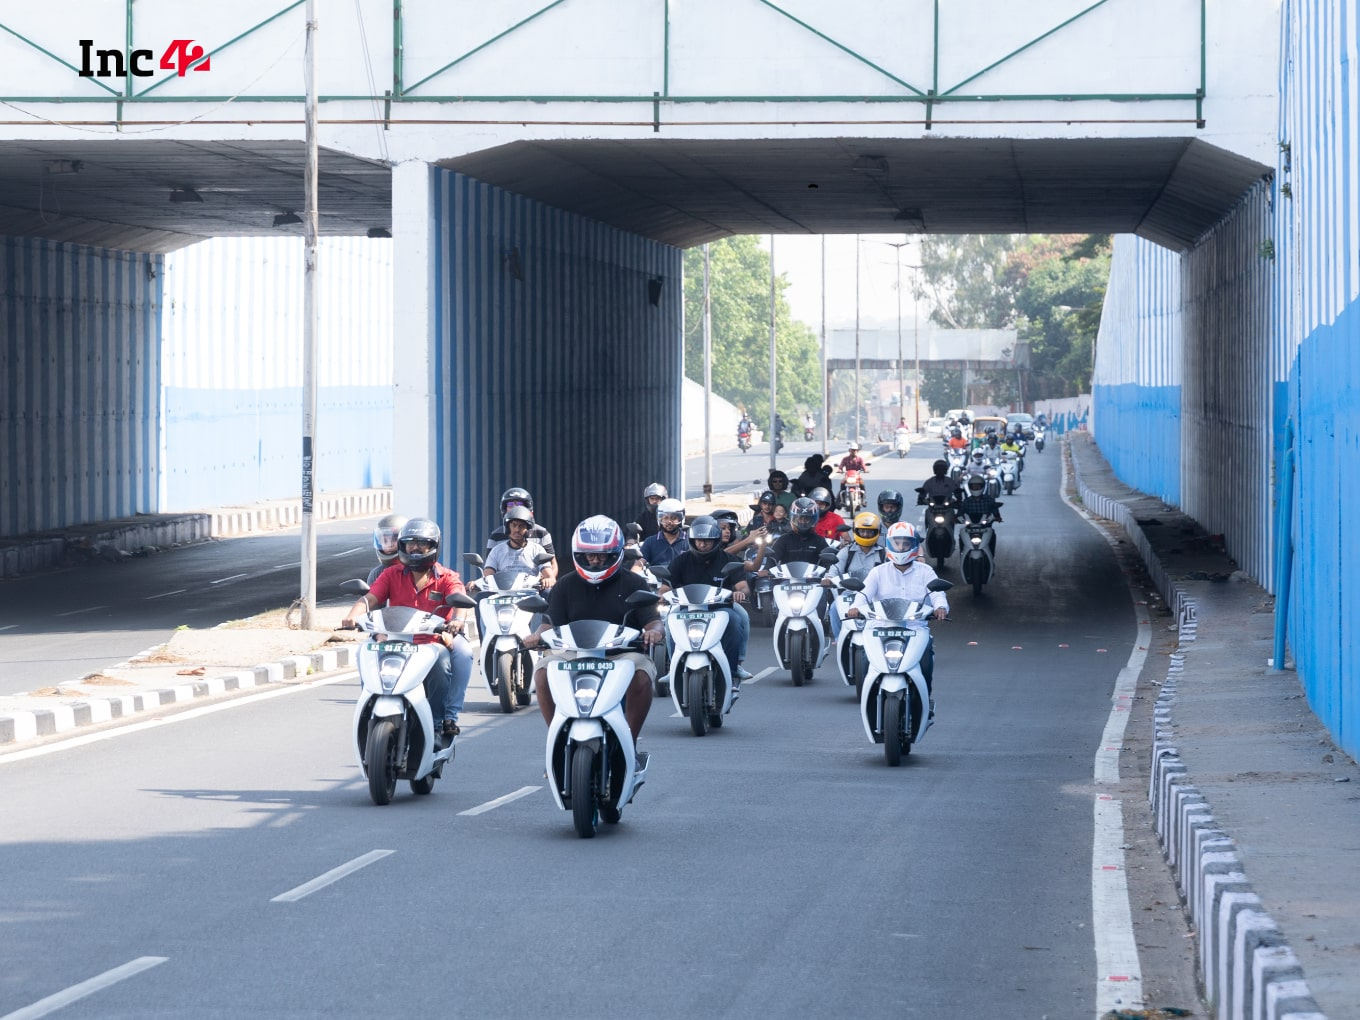 Counting EVs: The Market Size Of Electric Two-Wheelers In India